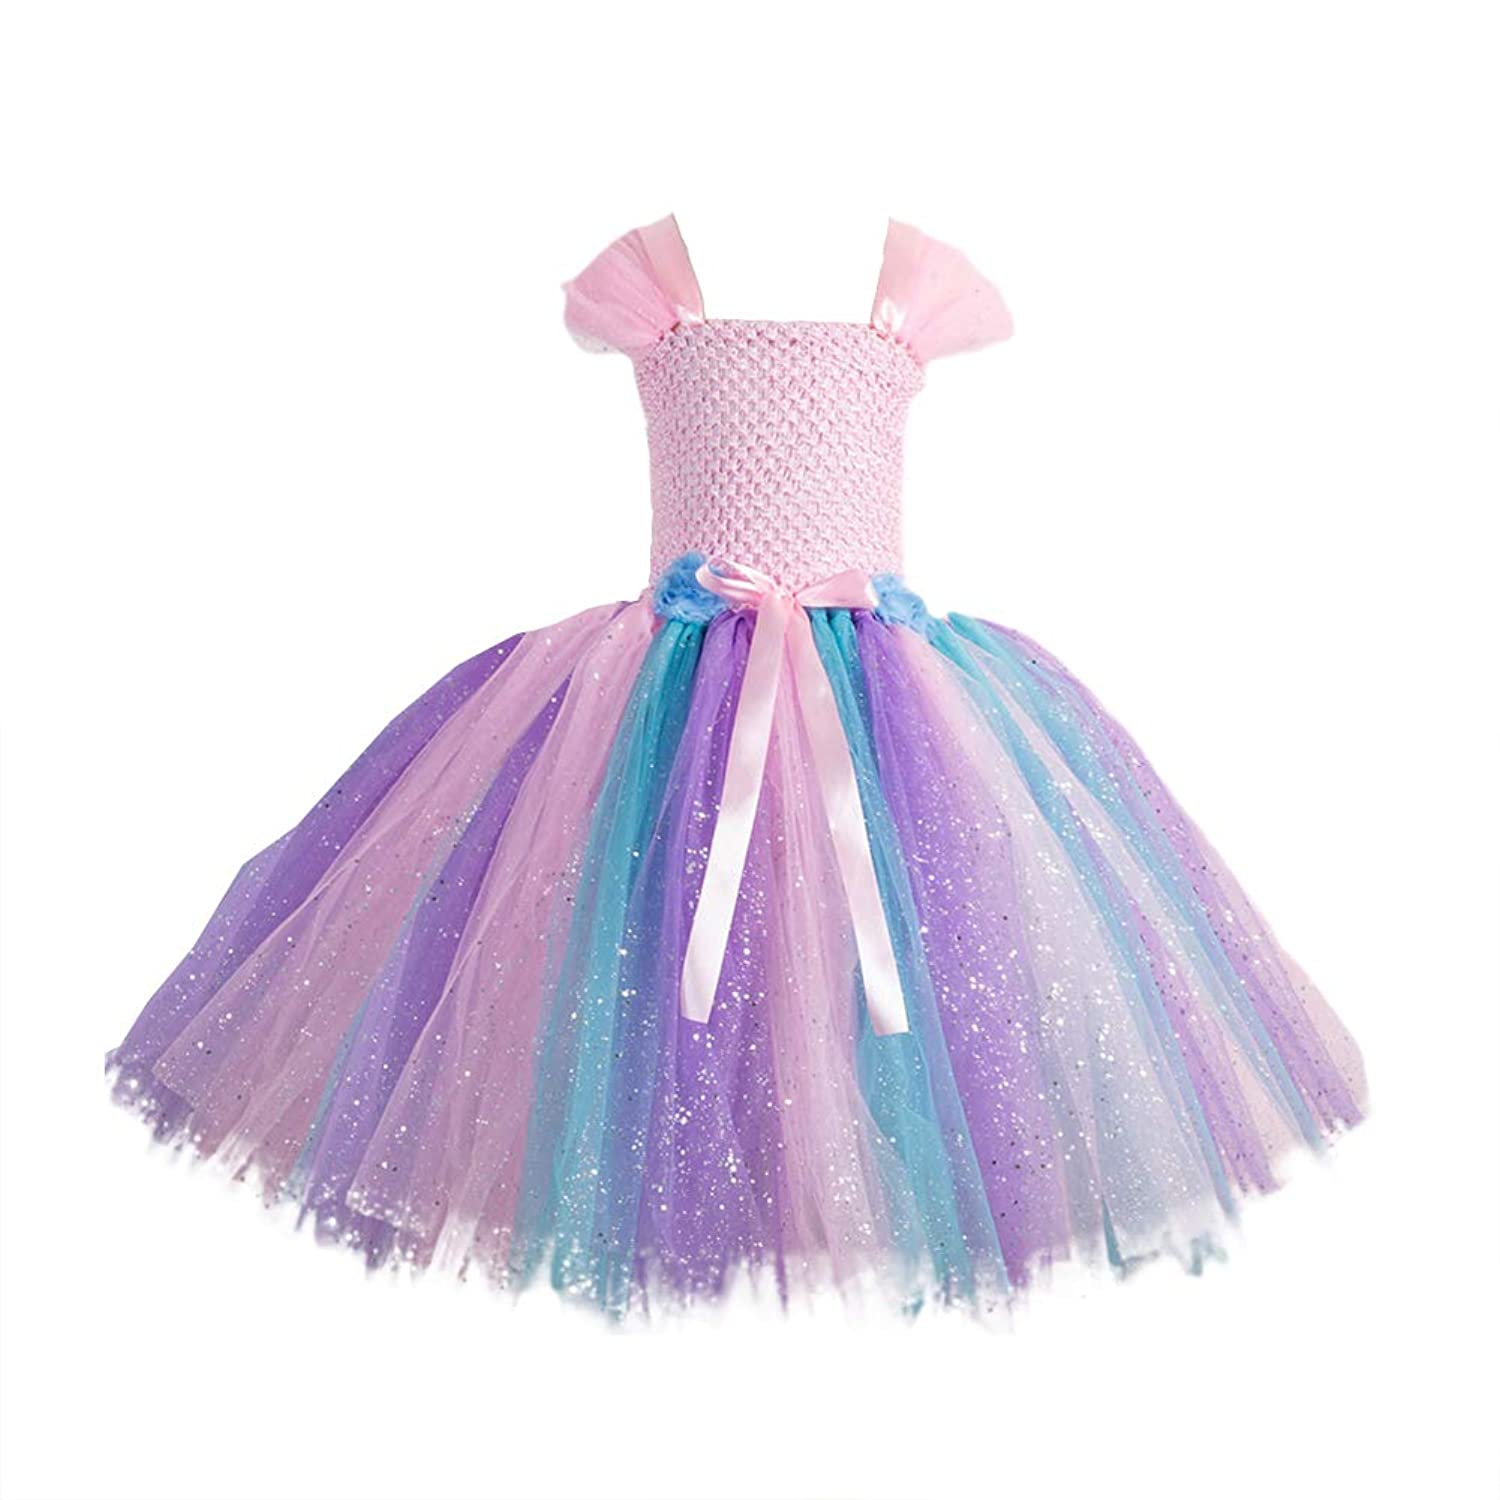 6ec1f14d4 ♤TUTU PRINCESS DRESS --- Girls Tutu dress with color bow-knot ribbon,  bright color, extremely keep fluffy. Fancy lovely princess dress costume  for party, ...